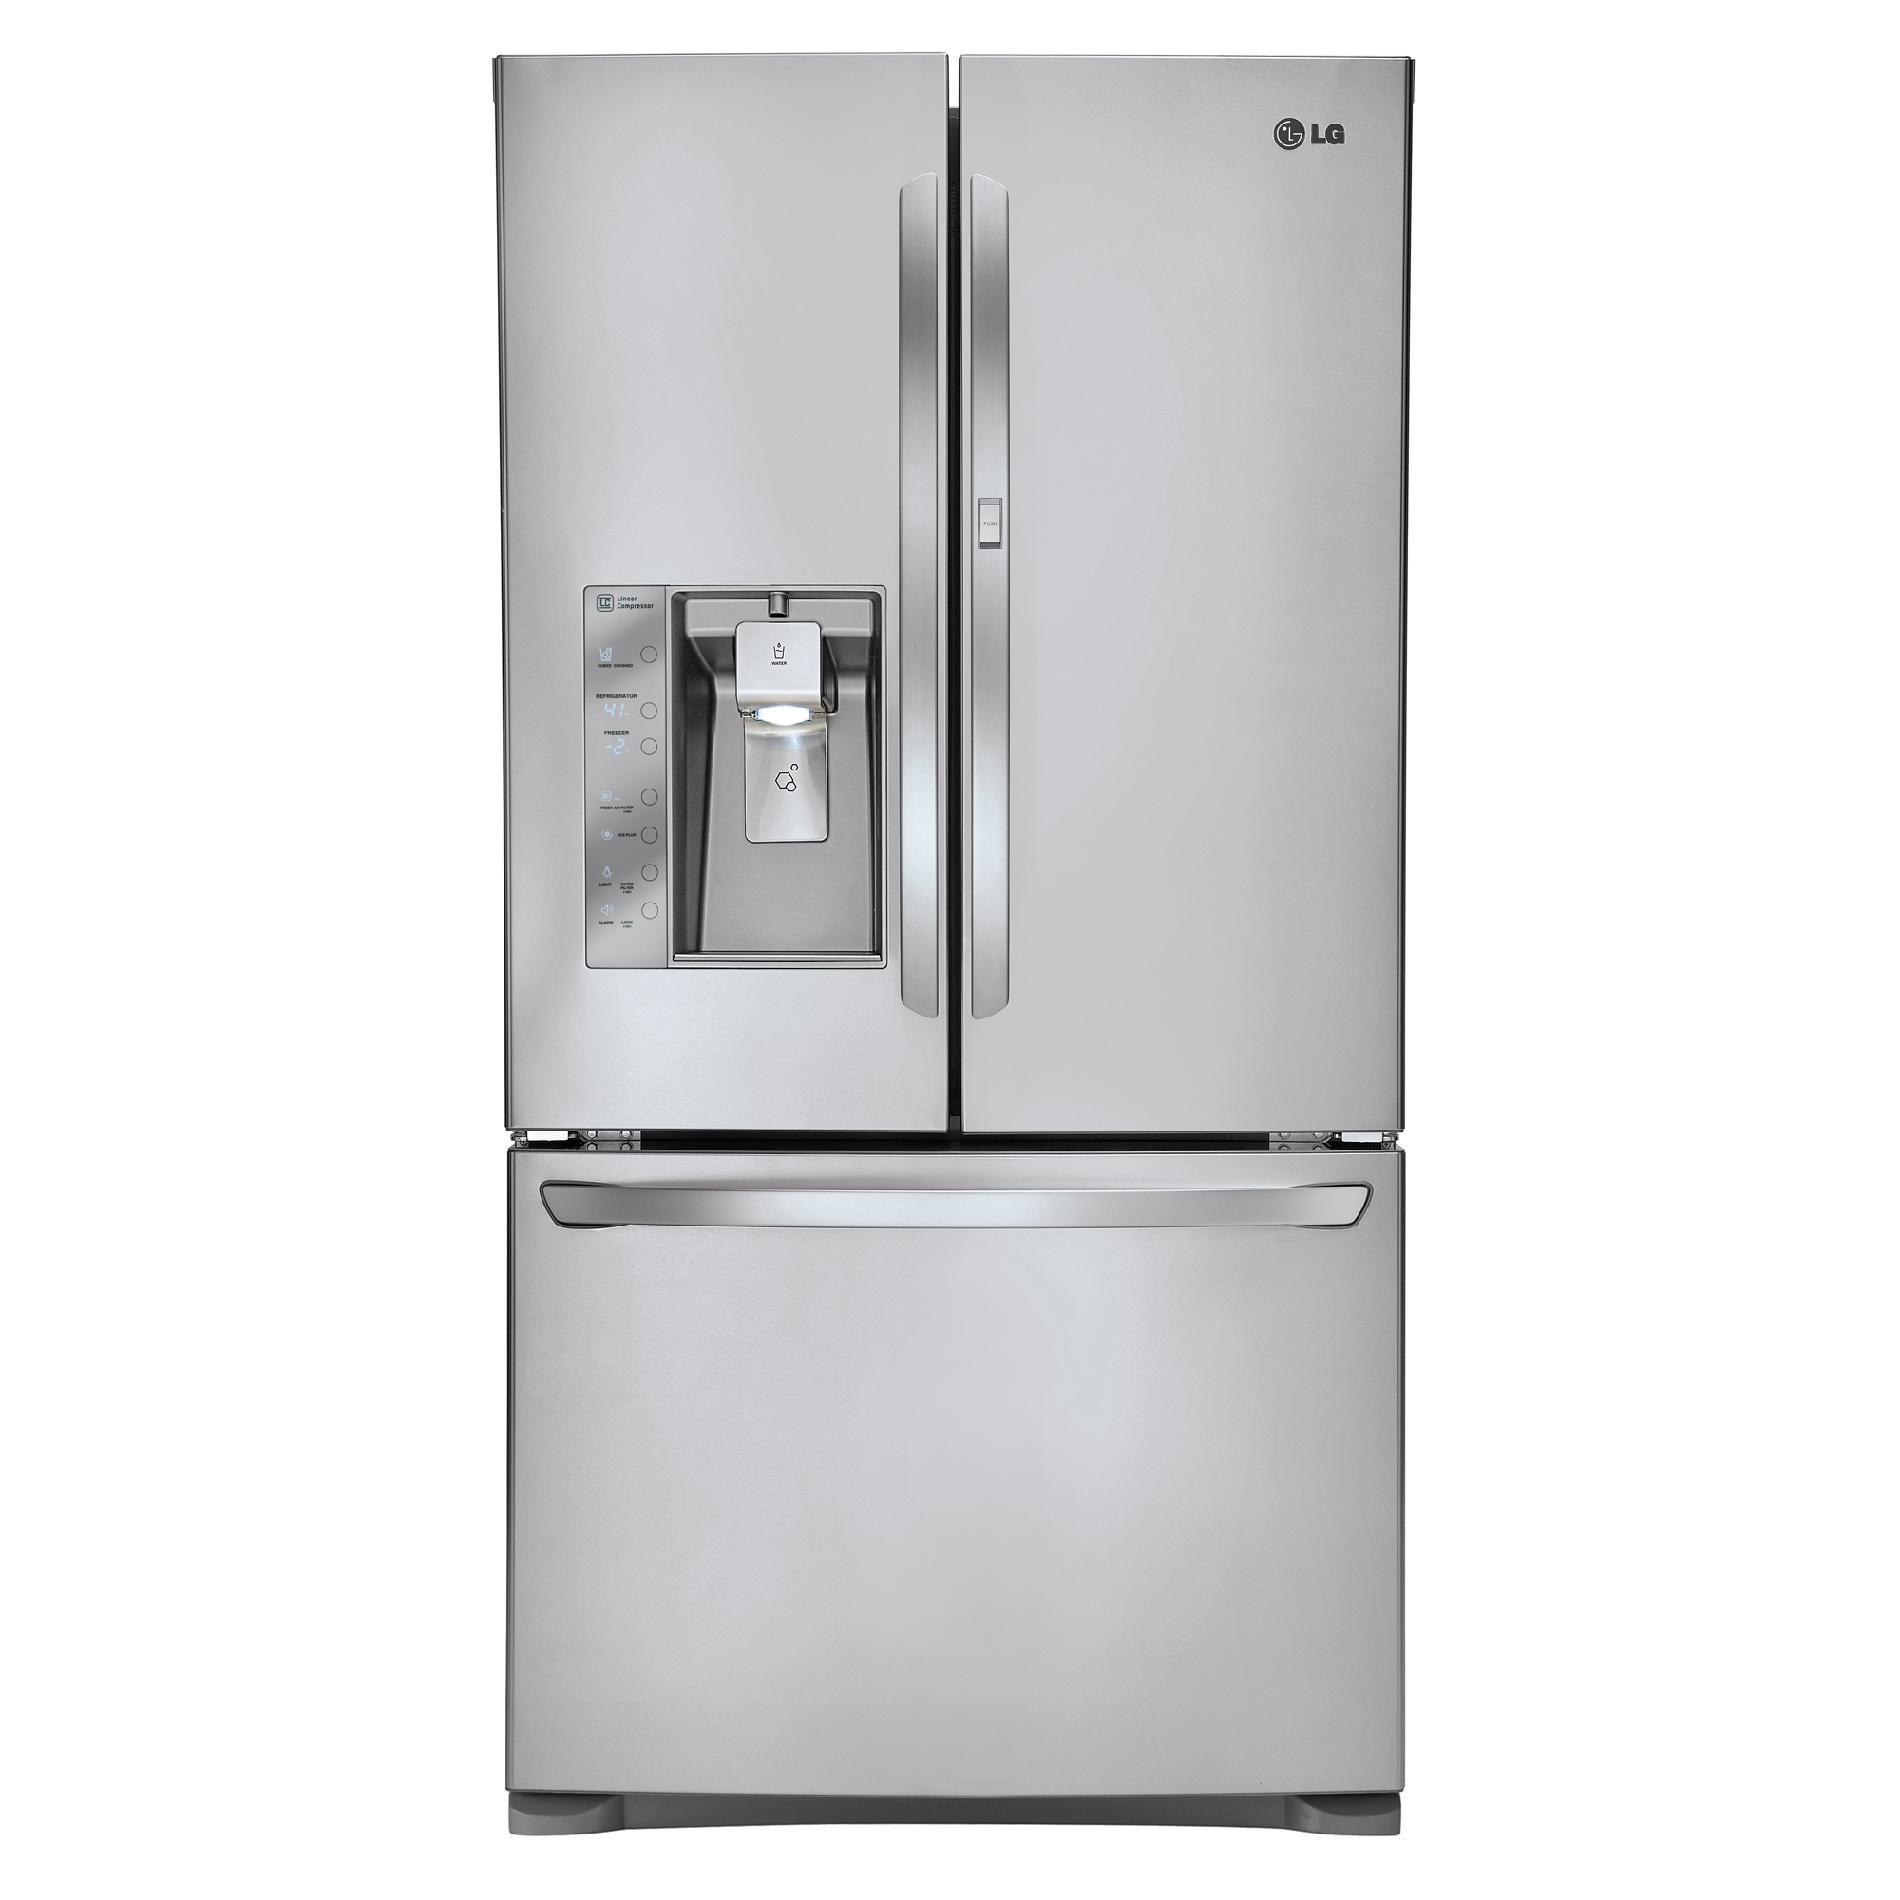 LG 29 cu.ft. French Door Refrigerator w/ Door-in-Door